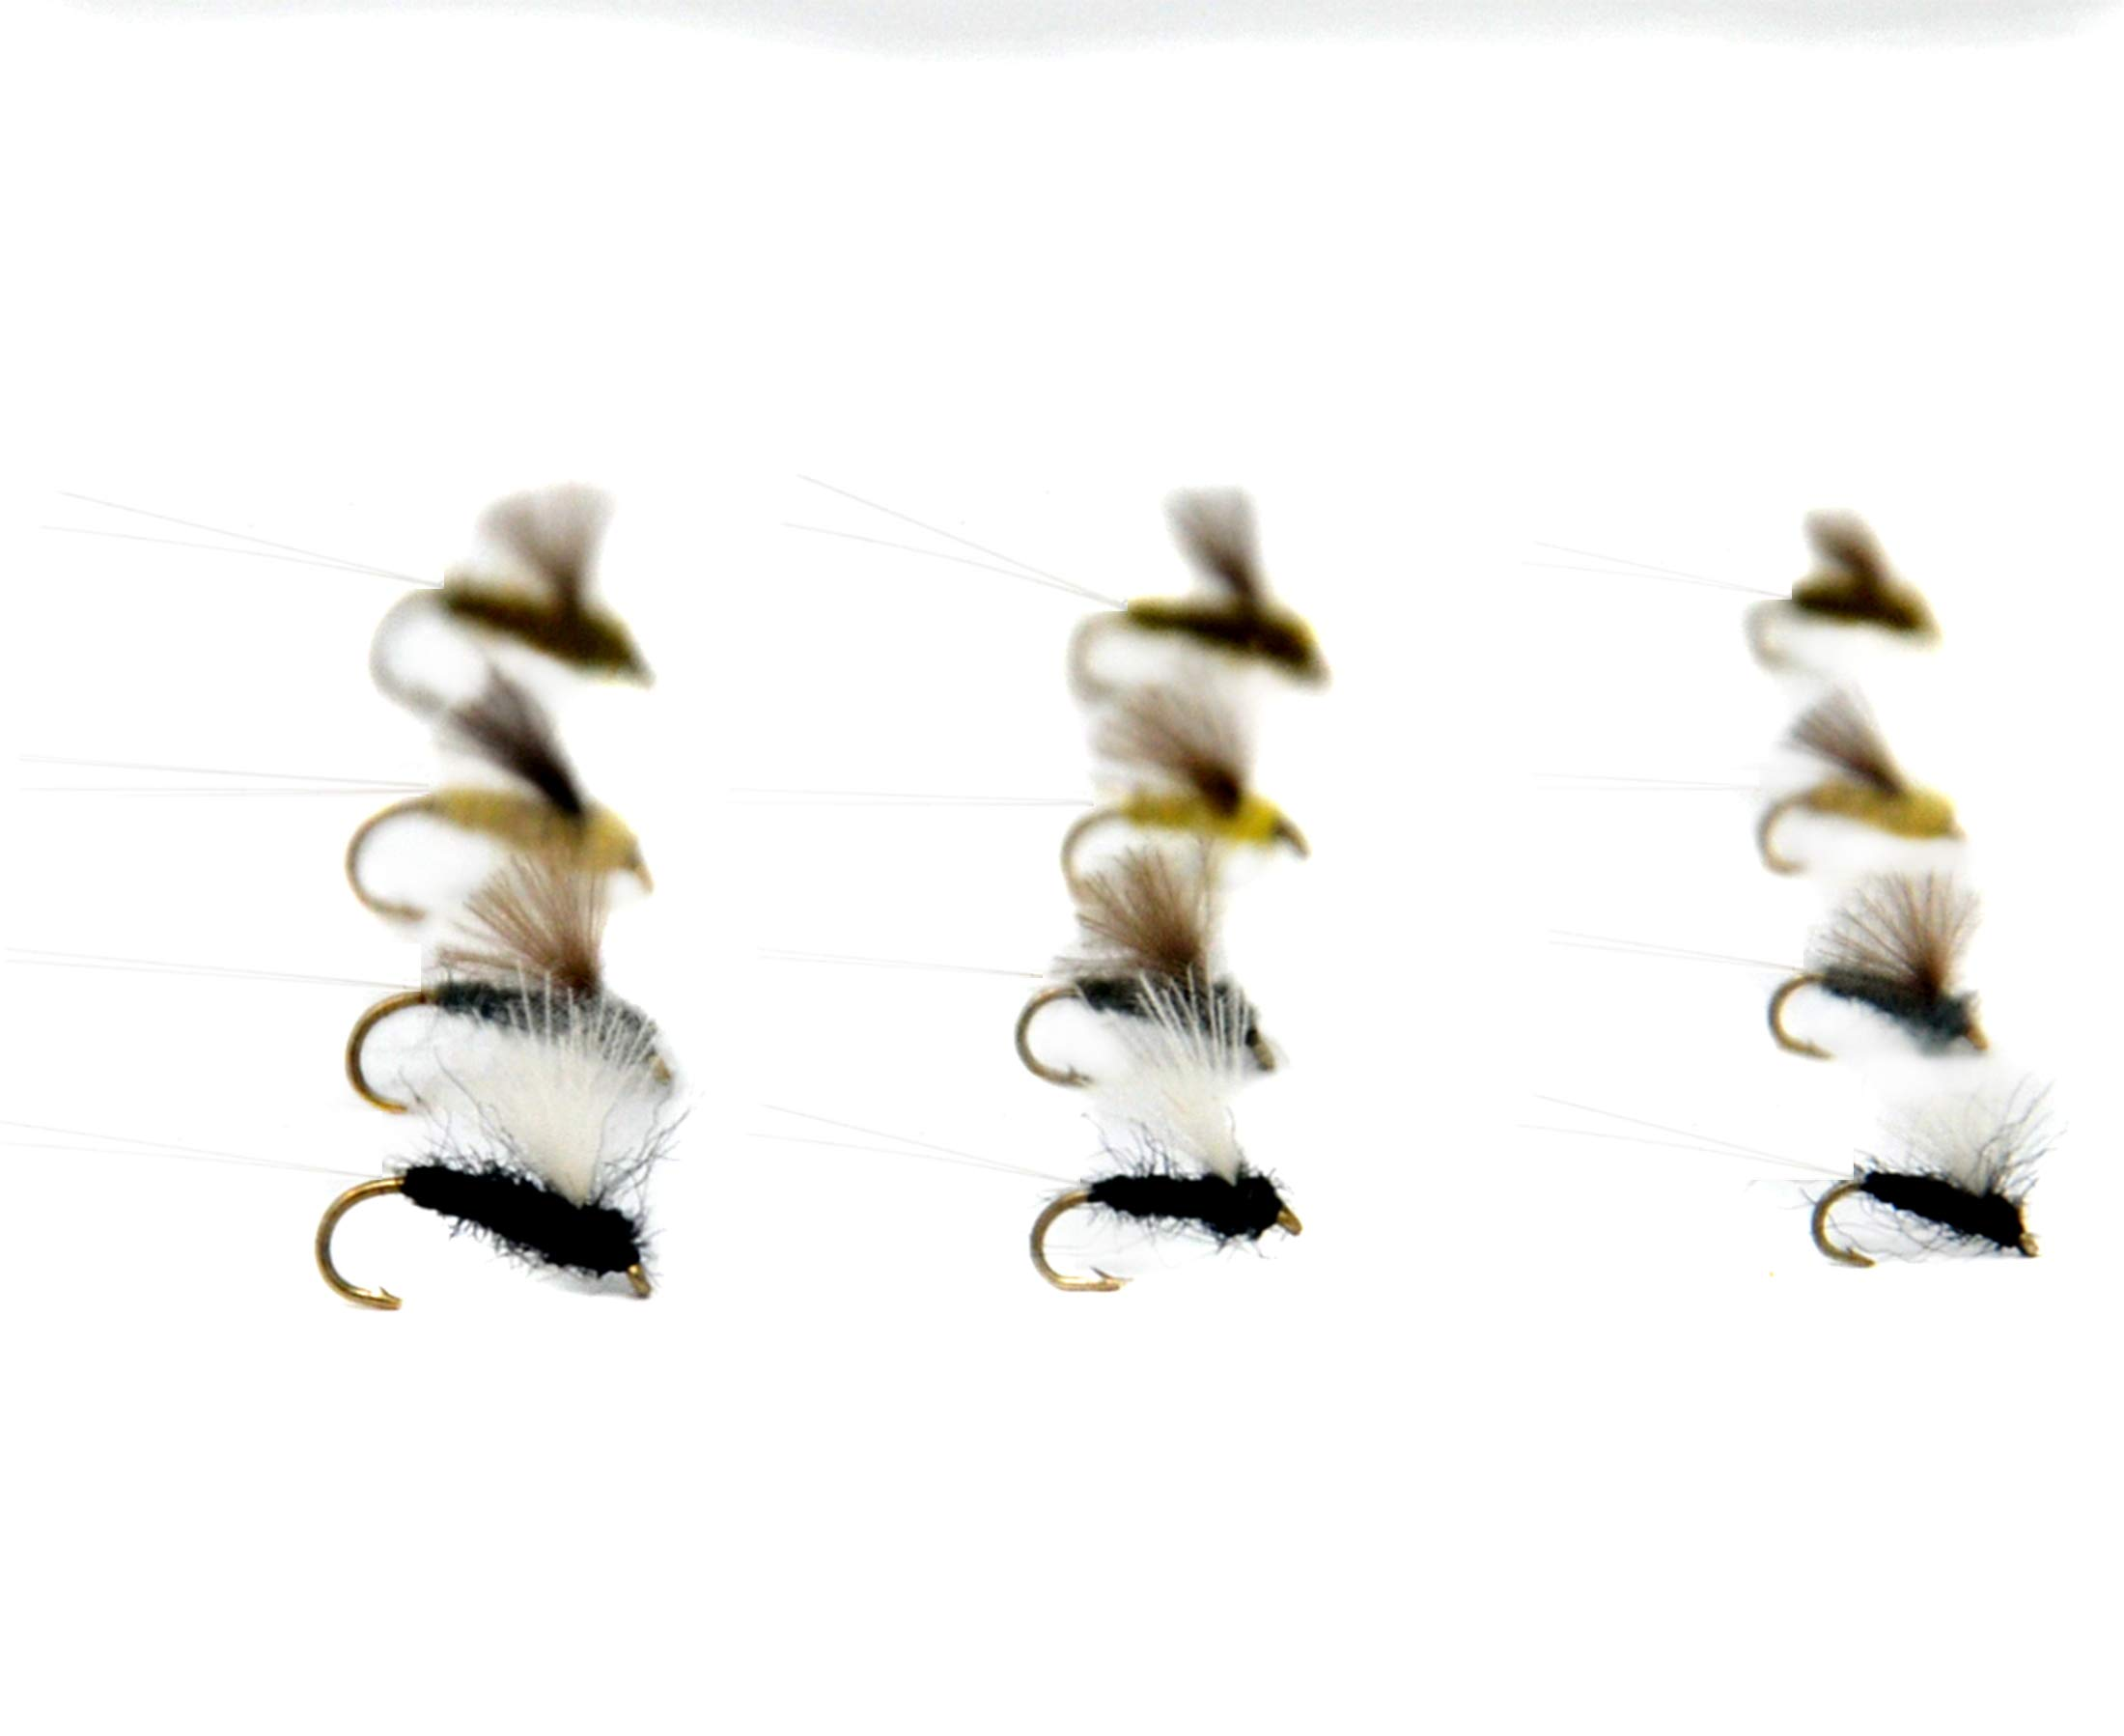 Outdoor Planet 12 RS2 Mayfly Nymph and Emerger Midge/Caddis/Stoneflies Trout Flies Lure Assortment for Trout Fly Fishing Flies by Outdoor Planet